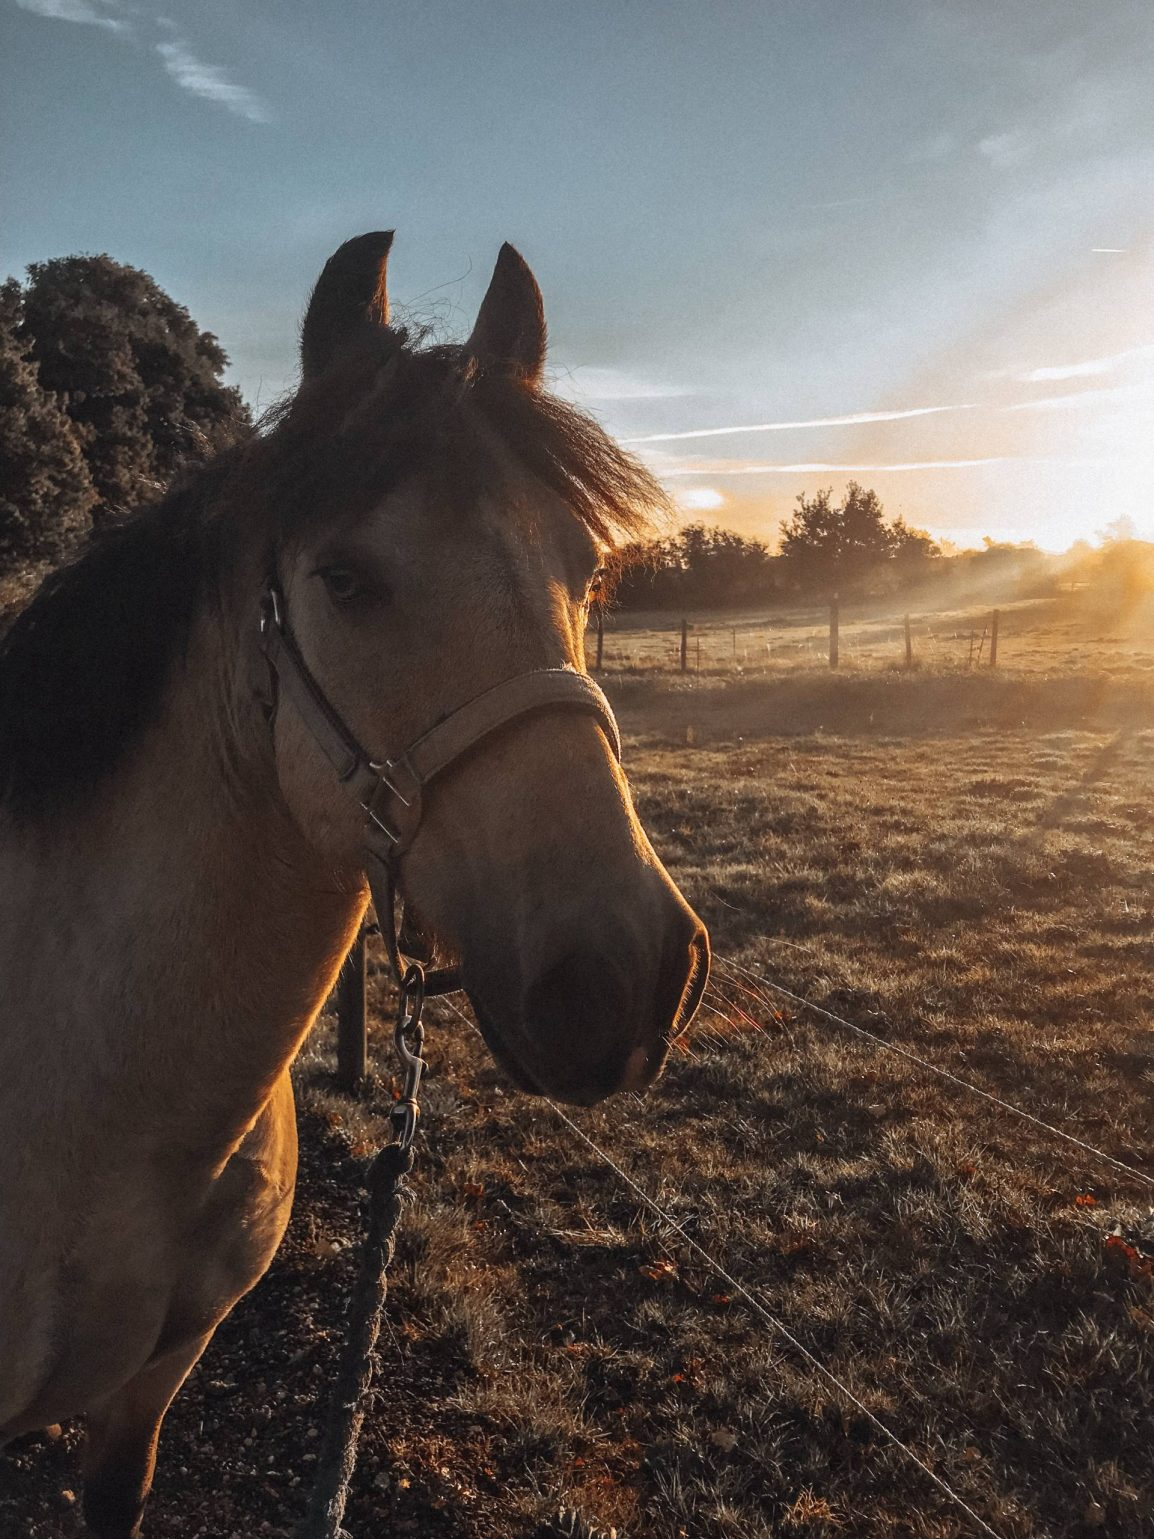 Horses can teach us many life lessons